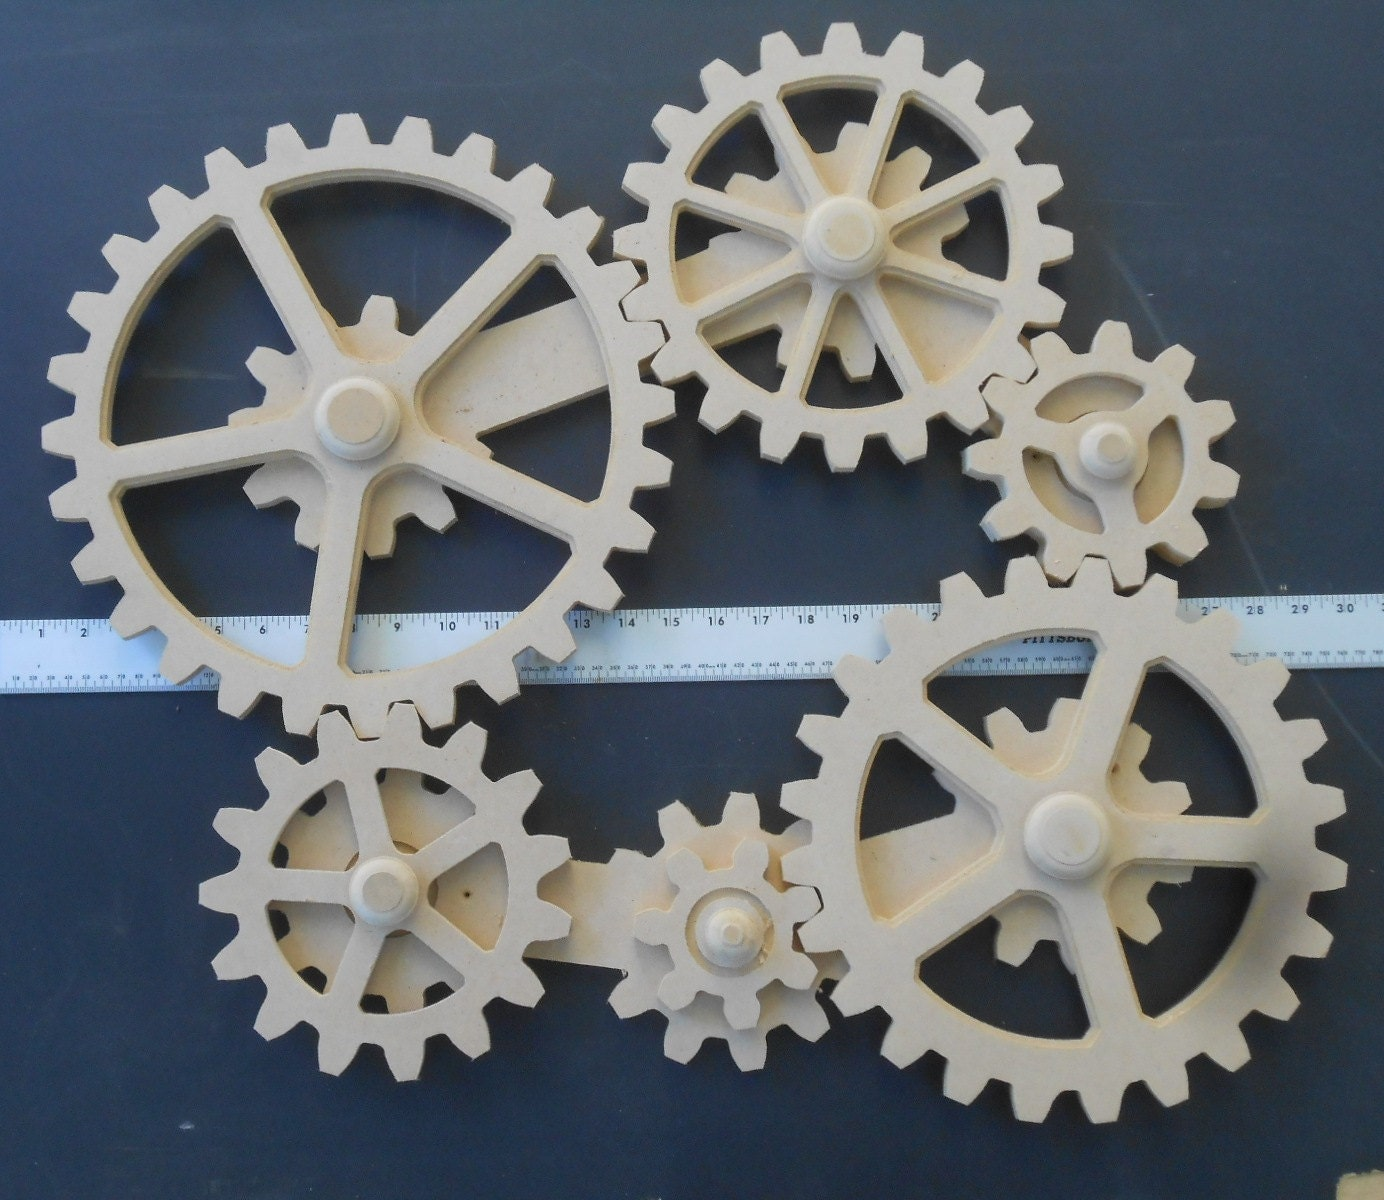 Gear Wall Decor Working Gears Wood Gear Wall Kinetic Art Steampunk On Cool Tips To Steampunk You